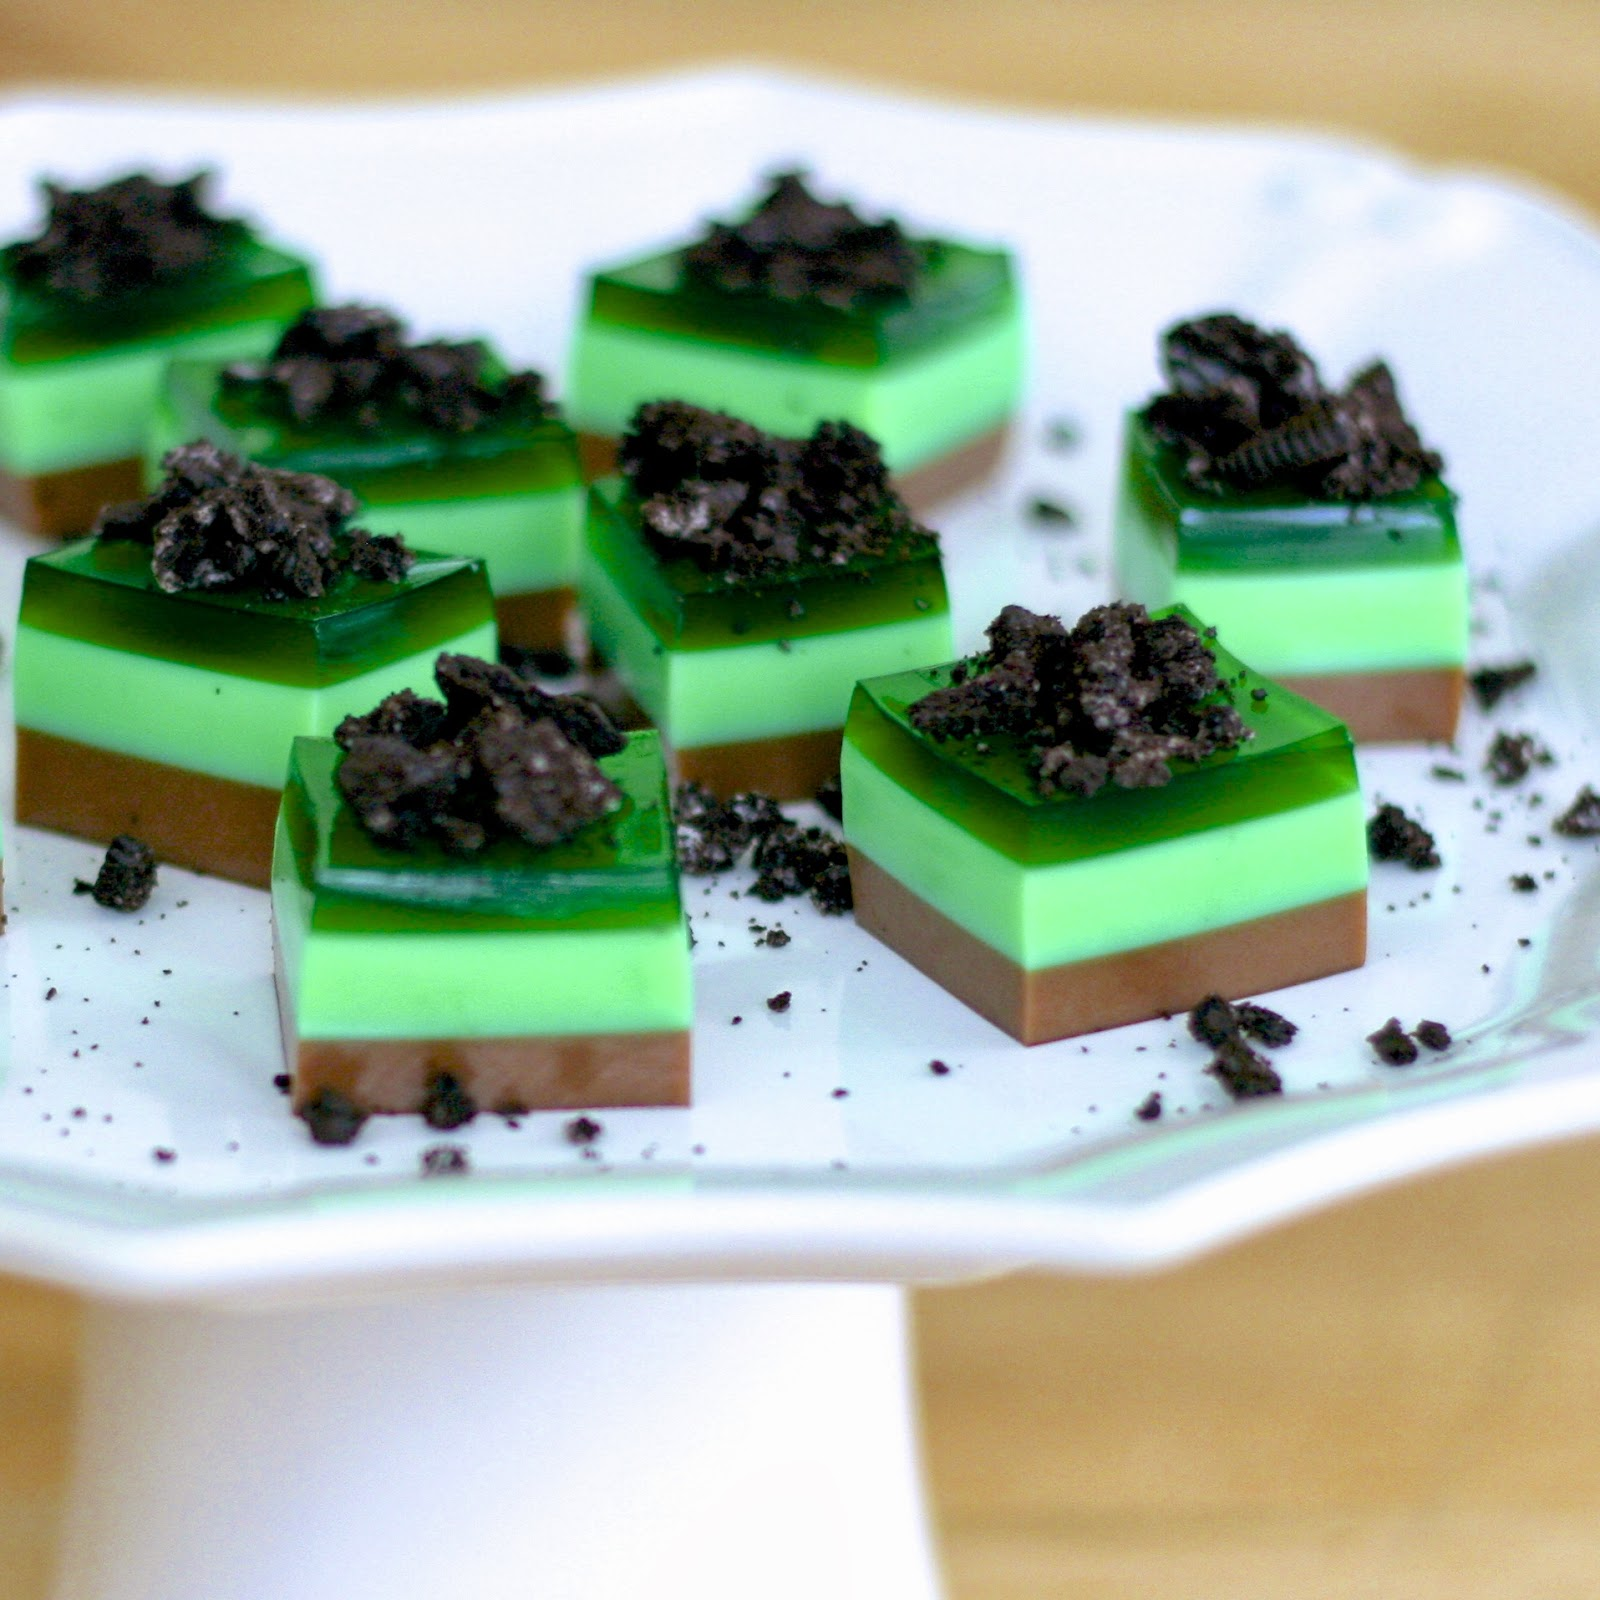 is for: Mint Chocolate {Thin Mint} Jelly Shots